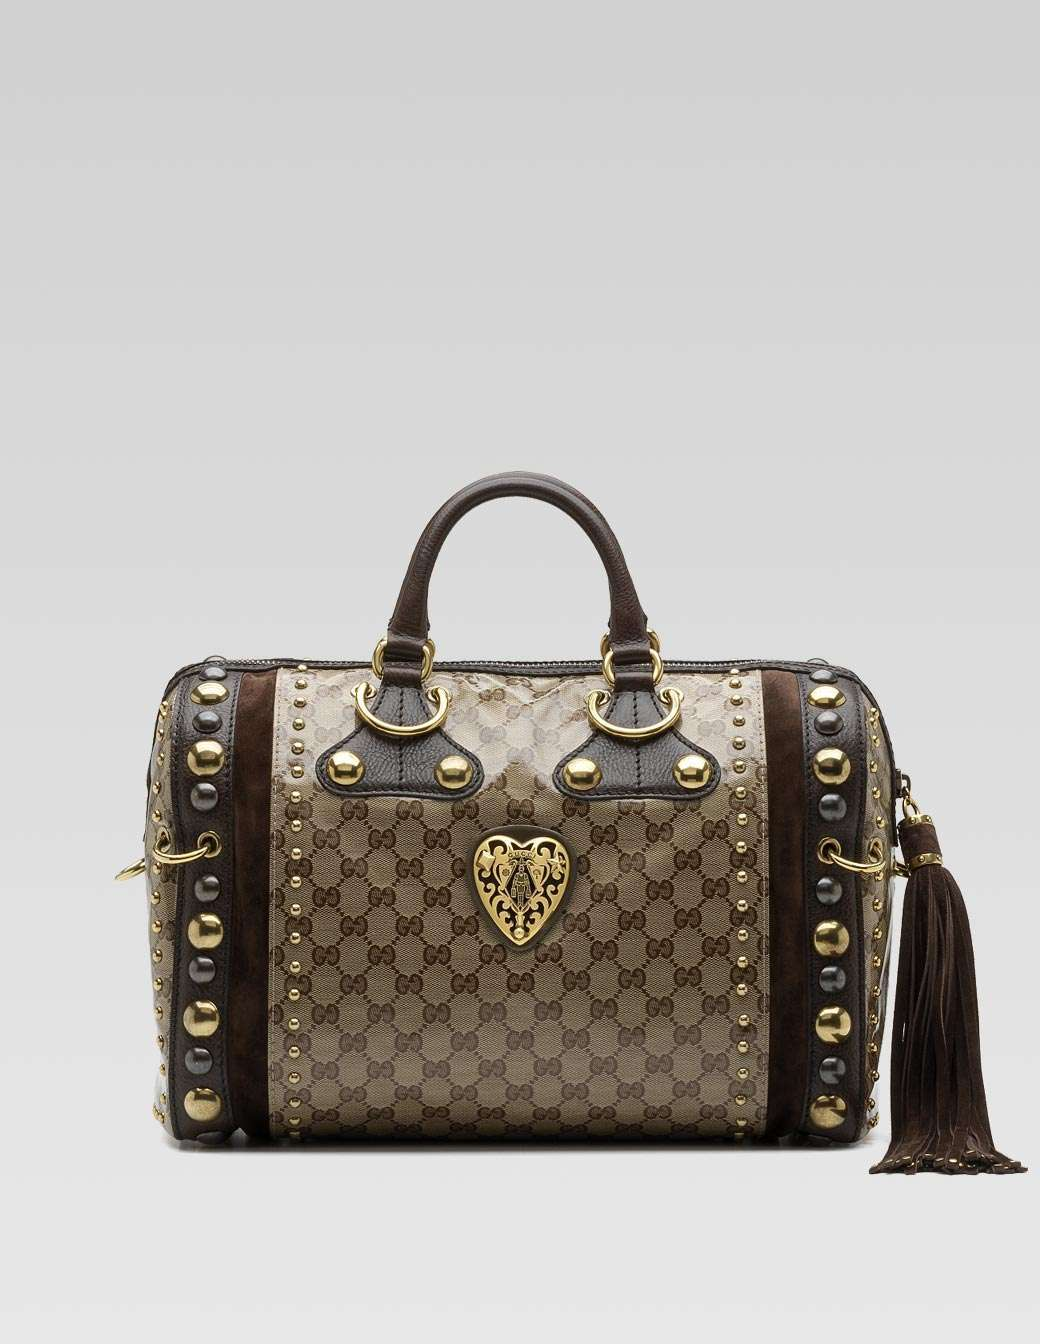 Bauletto Boston Bag vintage Gucci